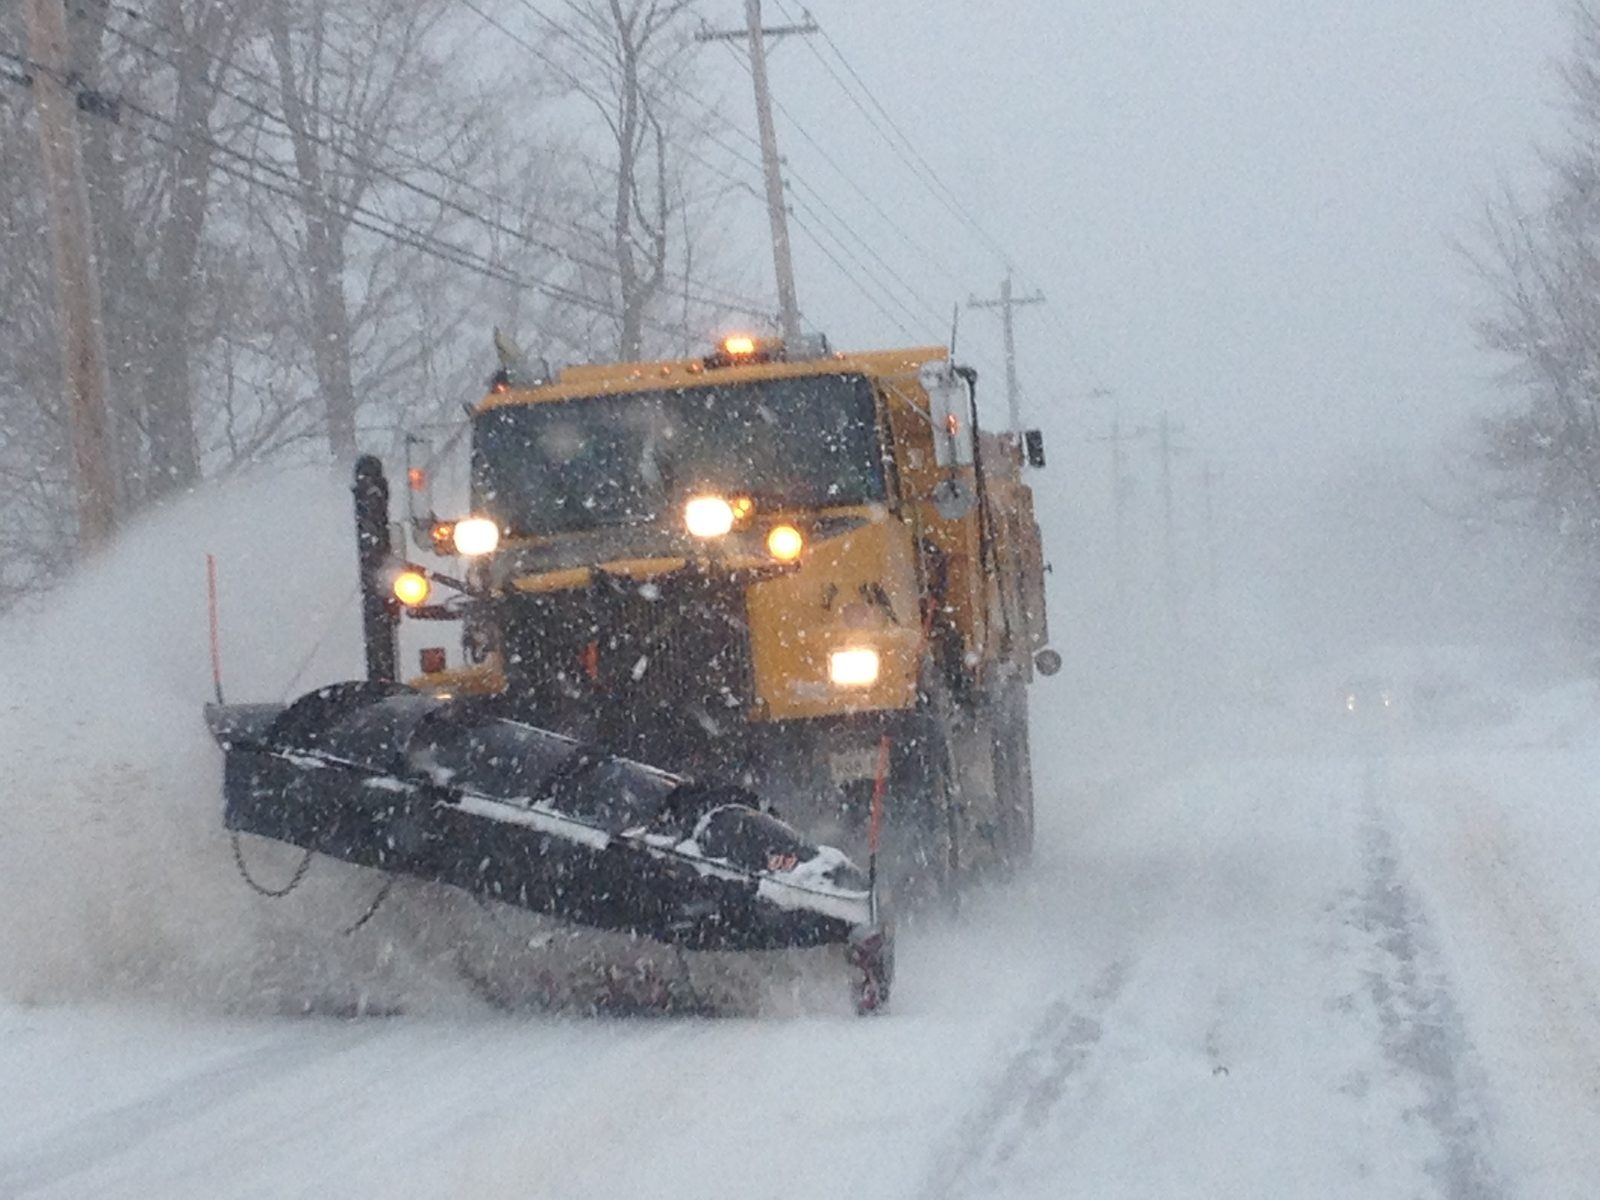 SDG to reassess snow clearing on commuter roads